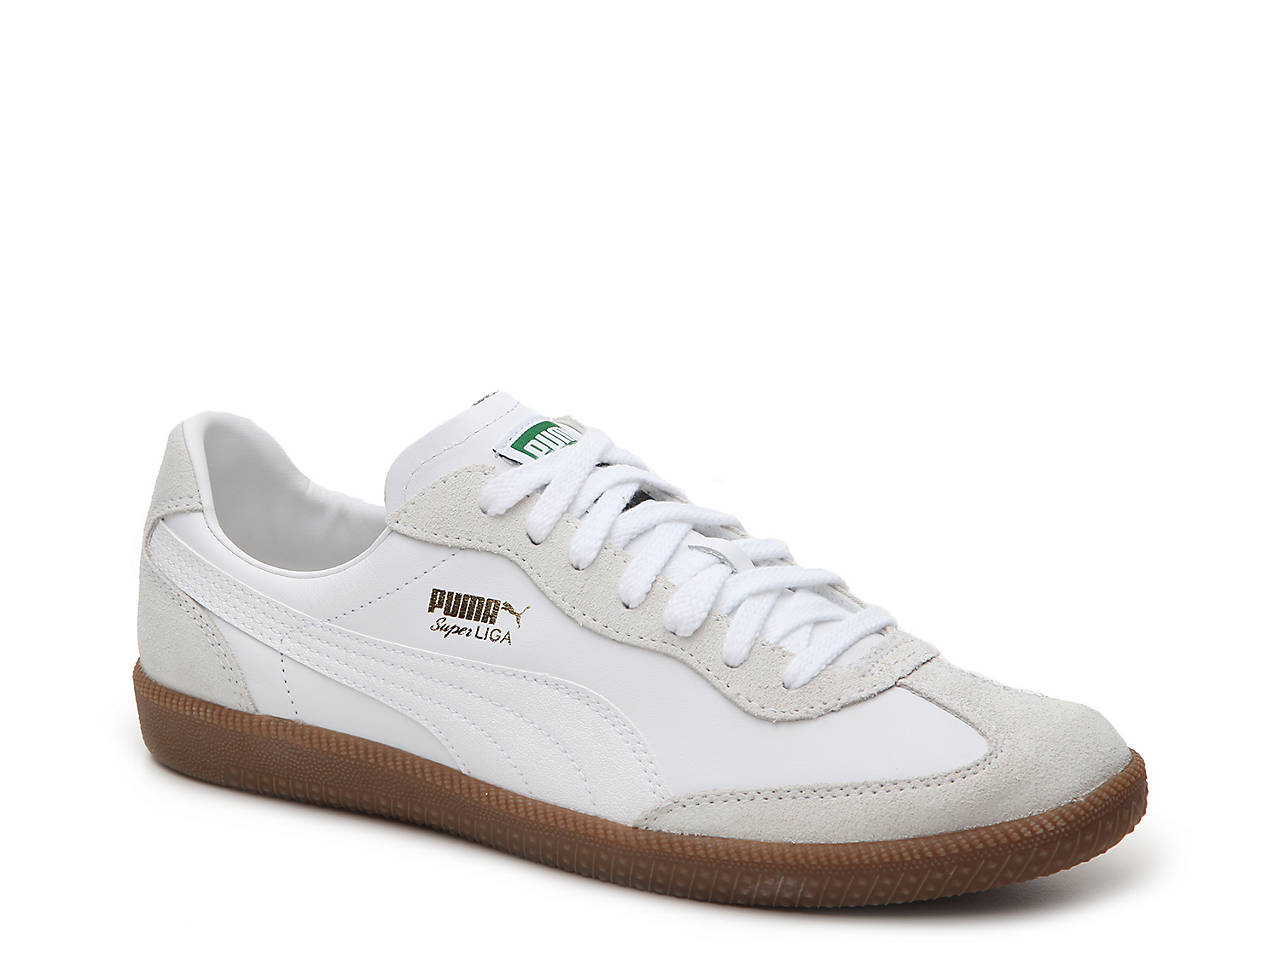 new arrival 0a6f1 7c64f Super Liga OG Retro Sneaker - Men s